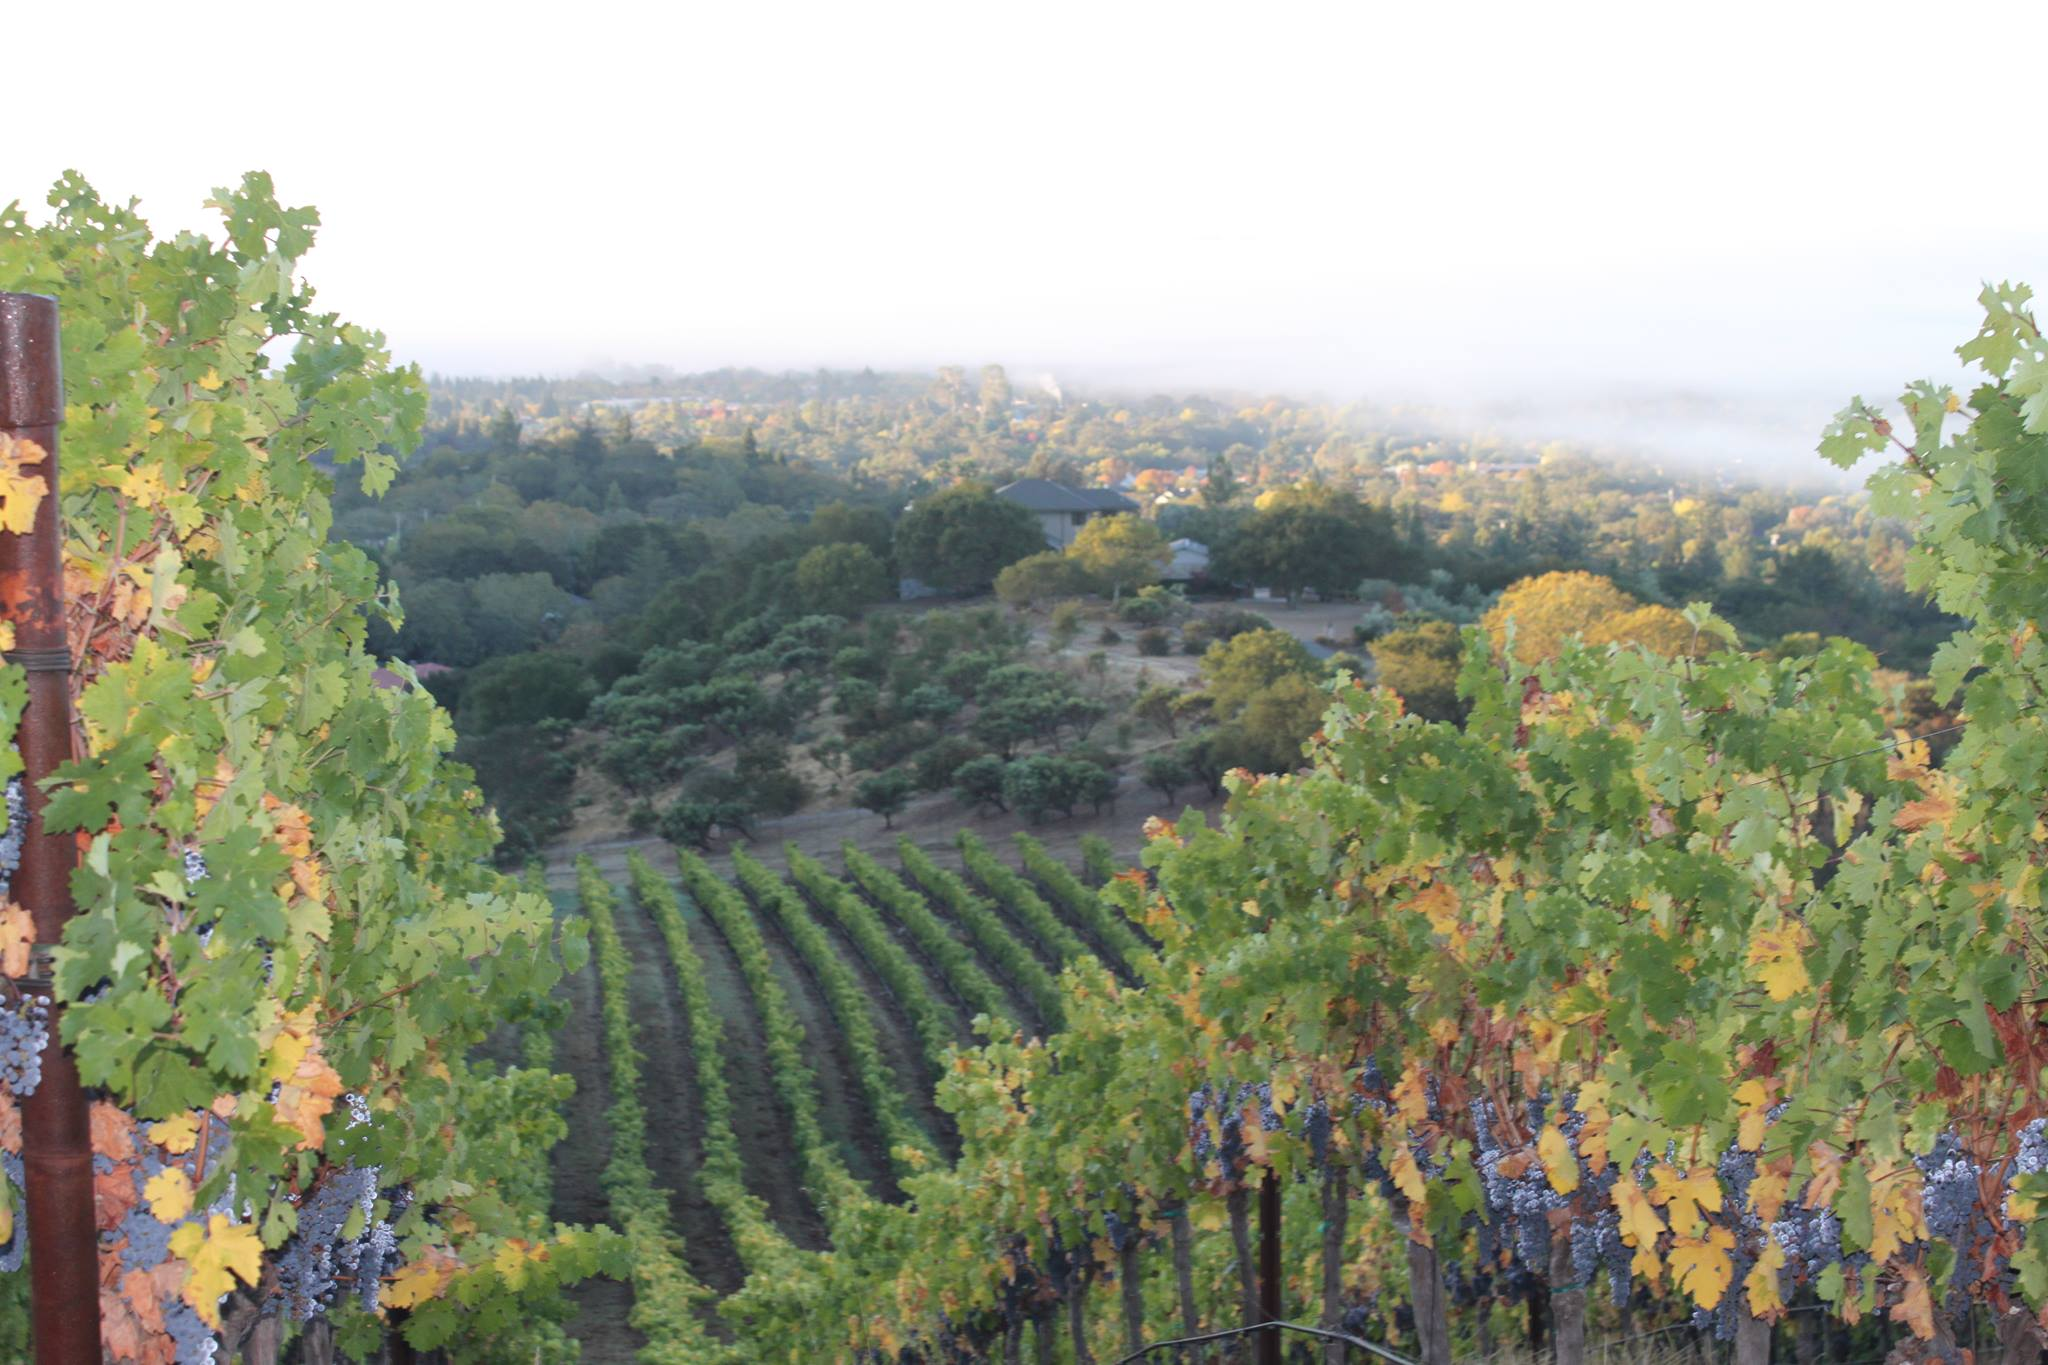 A View of One of the Estate's Vineyards